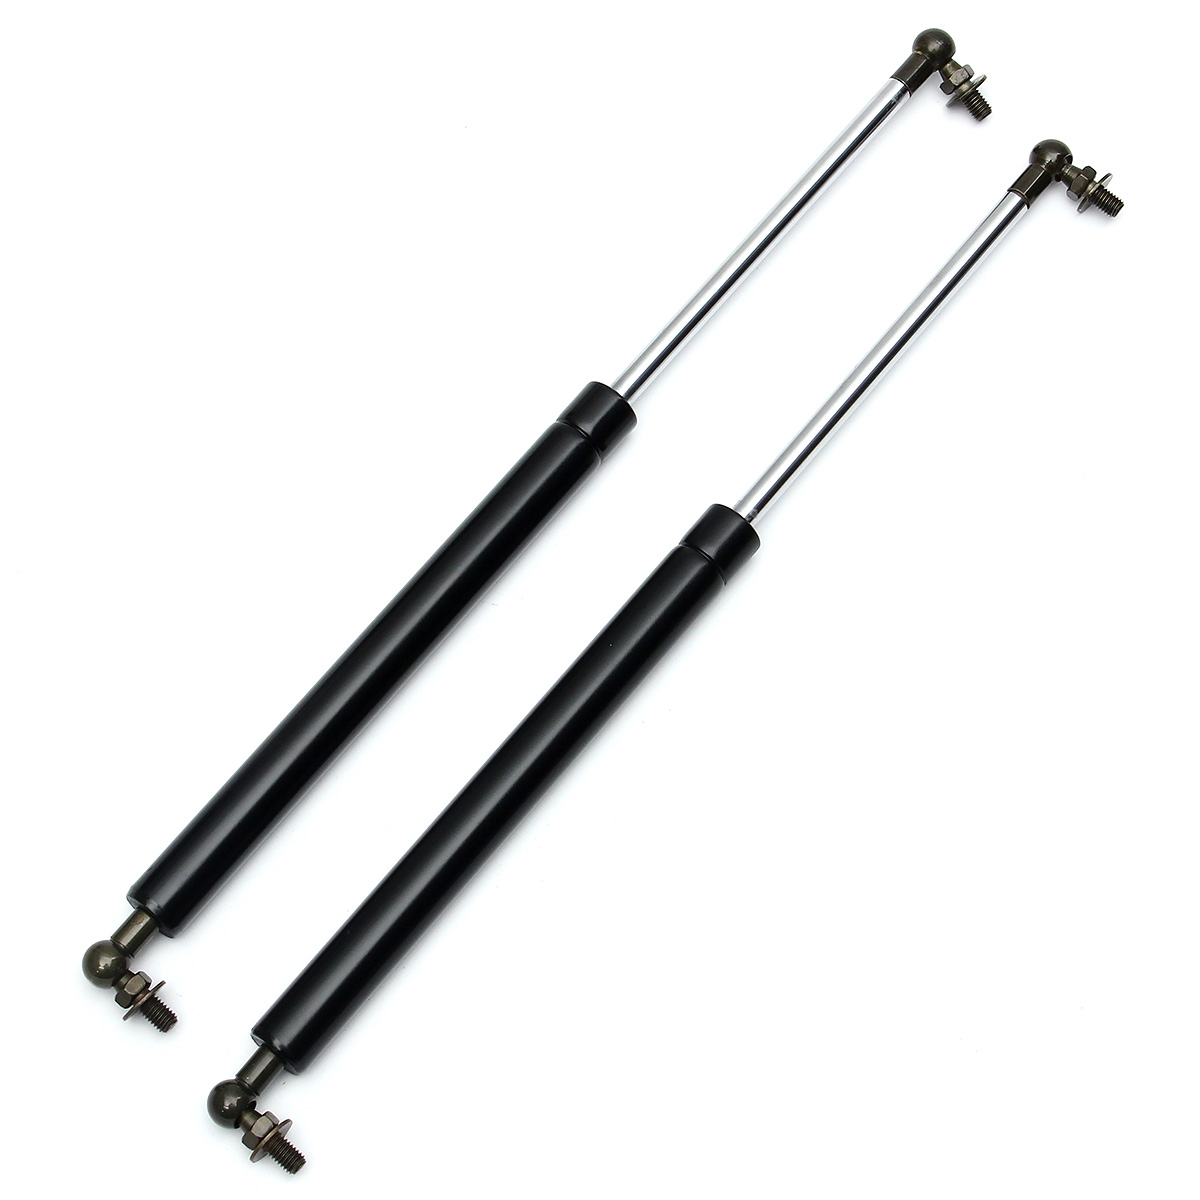 Set Of 2 Bonnet Gas Struts For Toyota Landcruiser 100